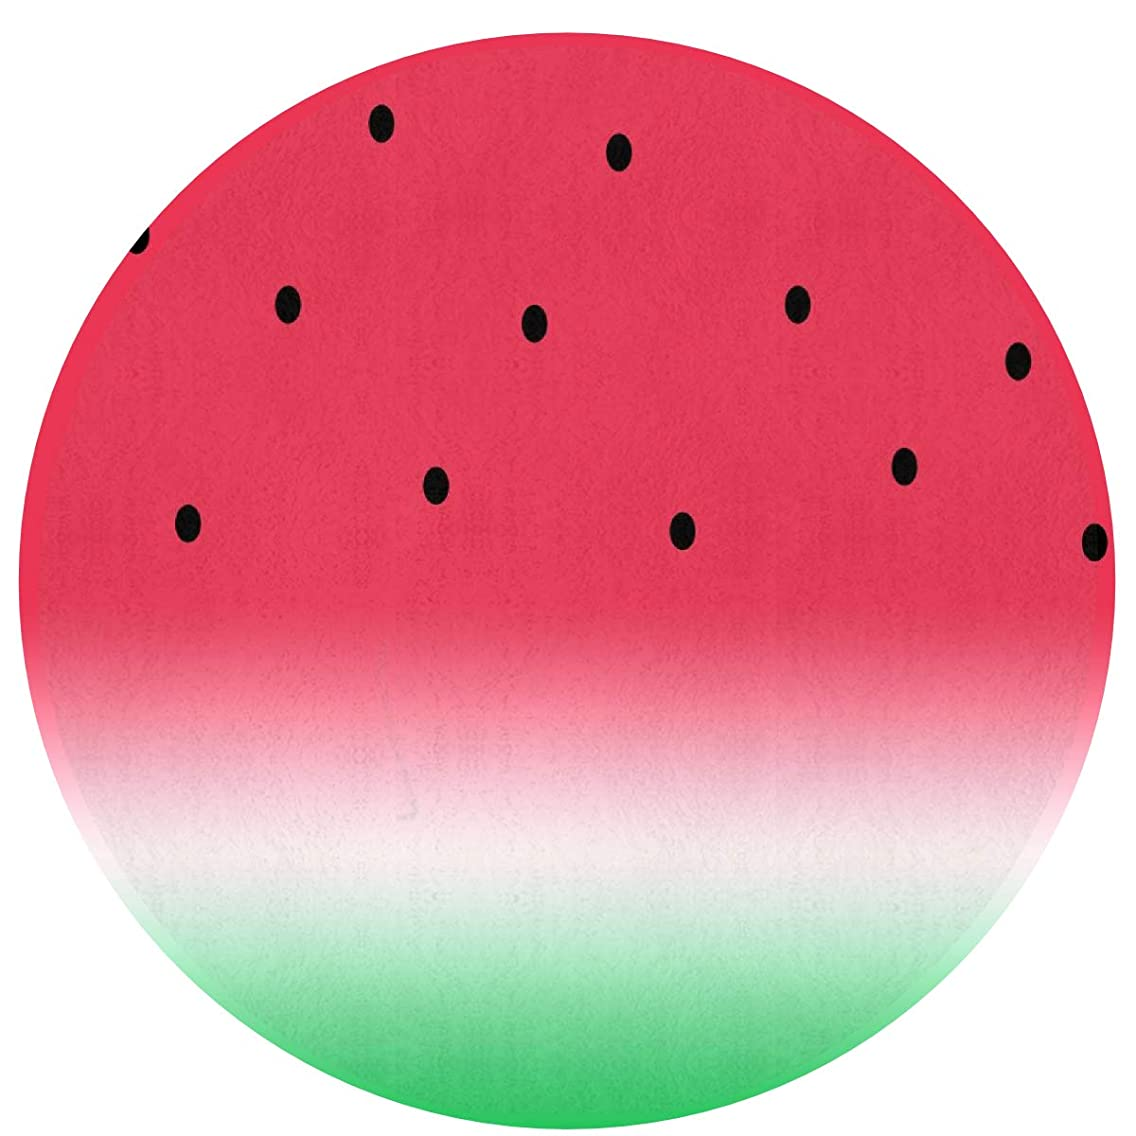 Funny Watermelon Fruit Roung Area Rug for Bedroom, Living Room, Home, Office/Memory Foam Ultra-Soft Doormat Floor Mat Entrance Rug Nursery Rugs (16 inch Diameter)